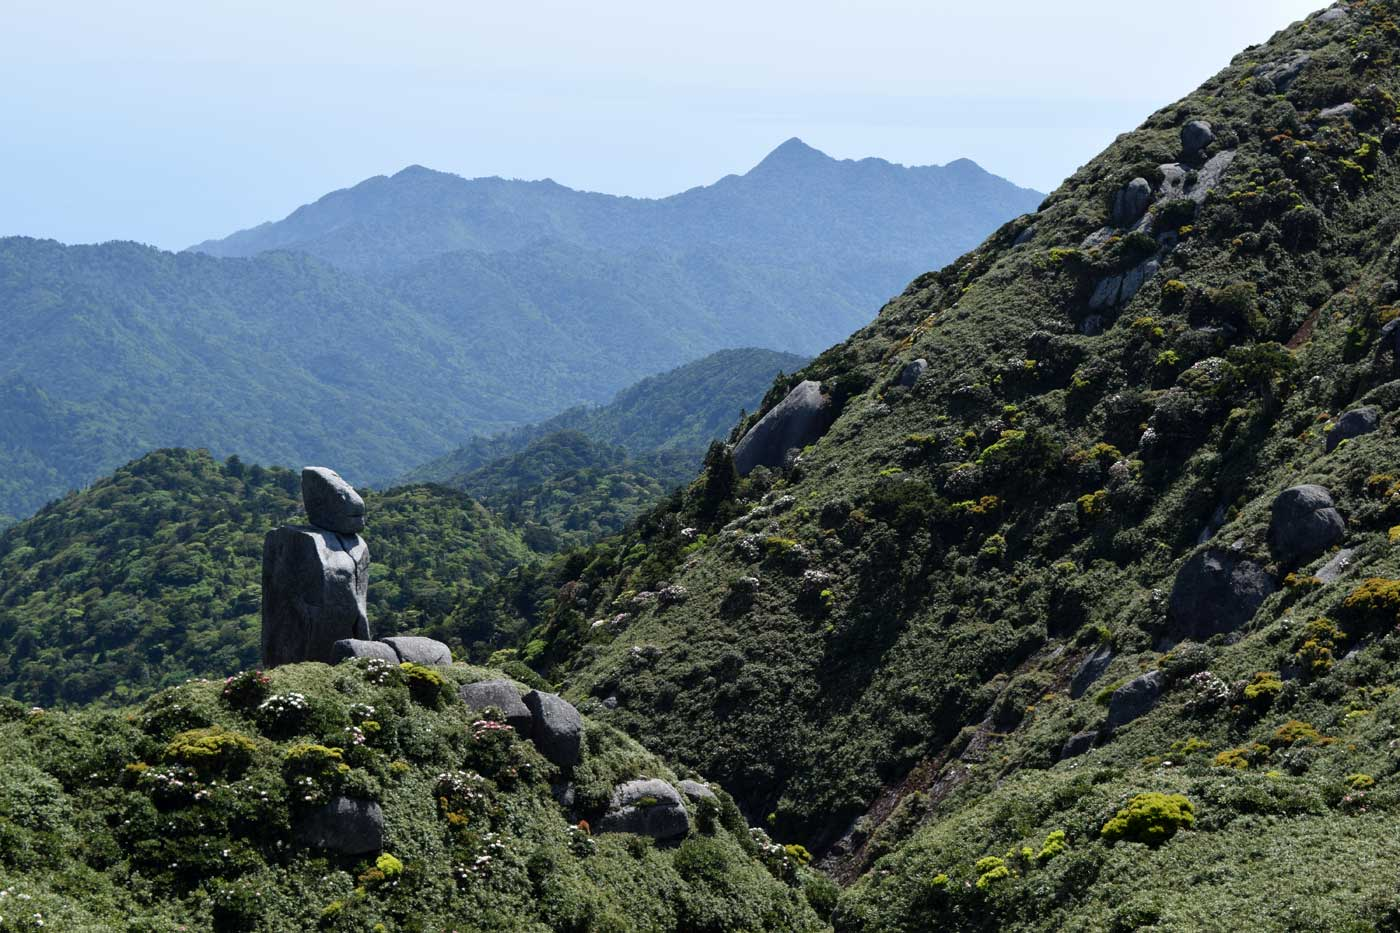 The peaks of Mianoura-dake. A real rhododendron garden.